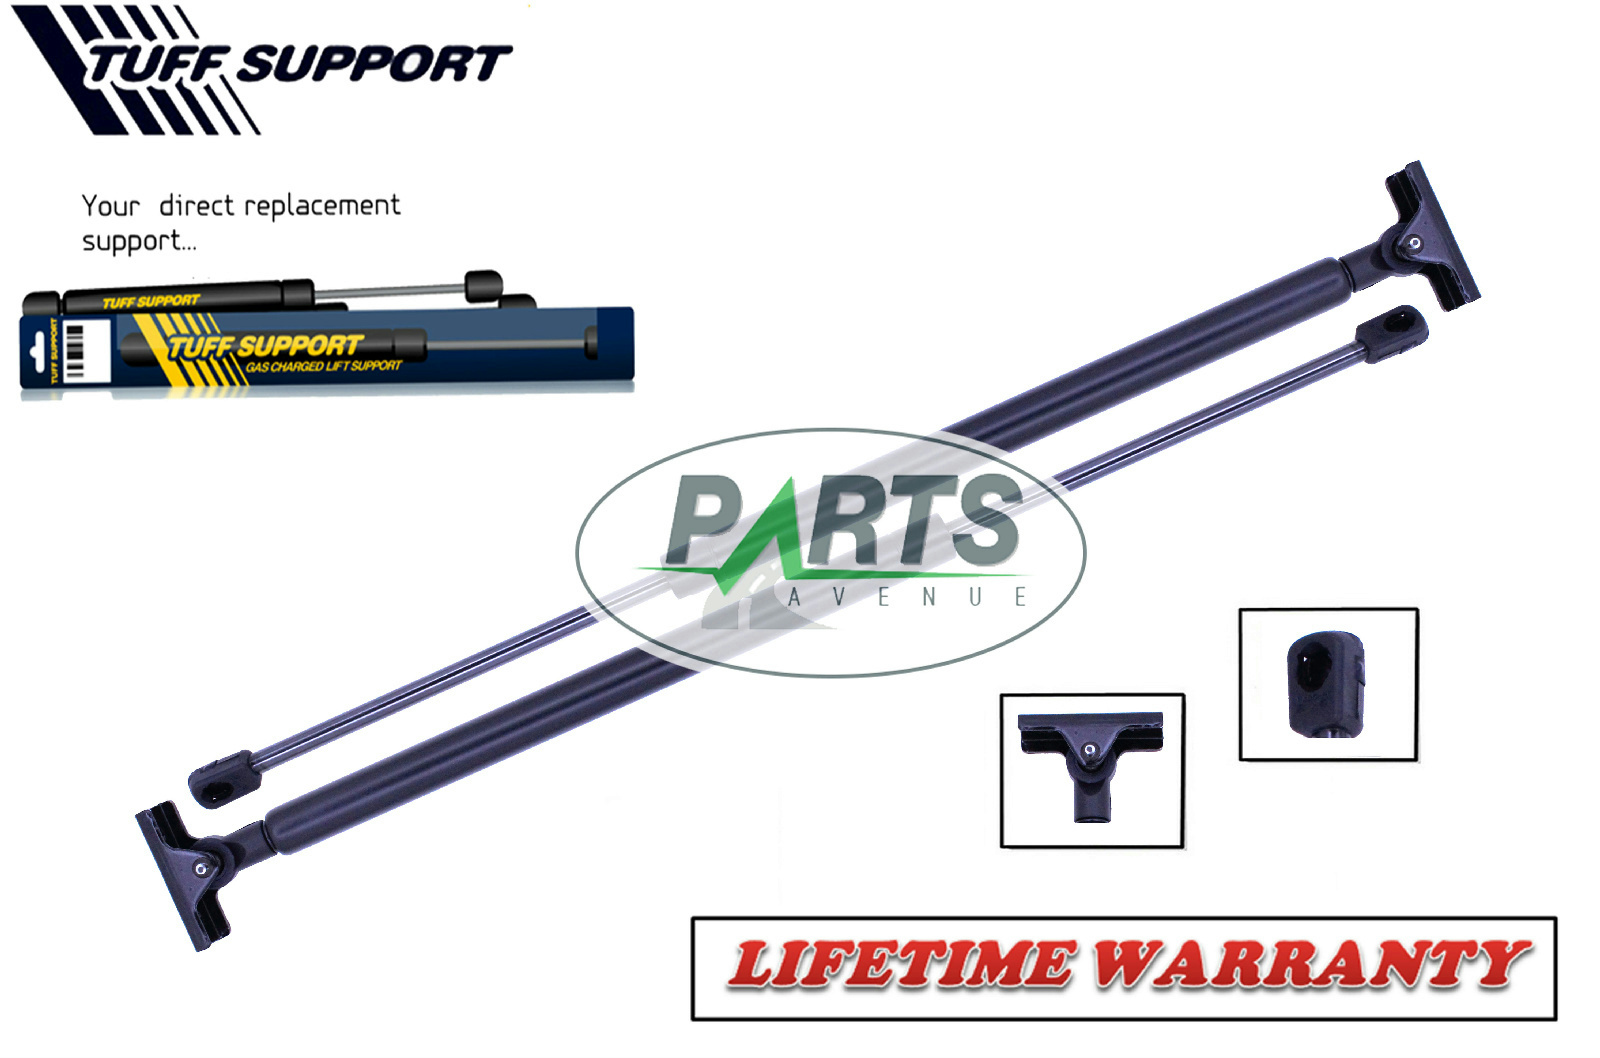 strong arm lift support installation instructions